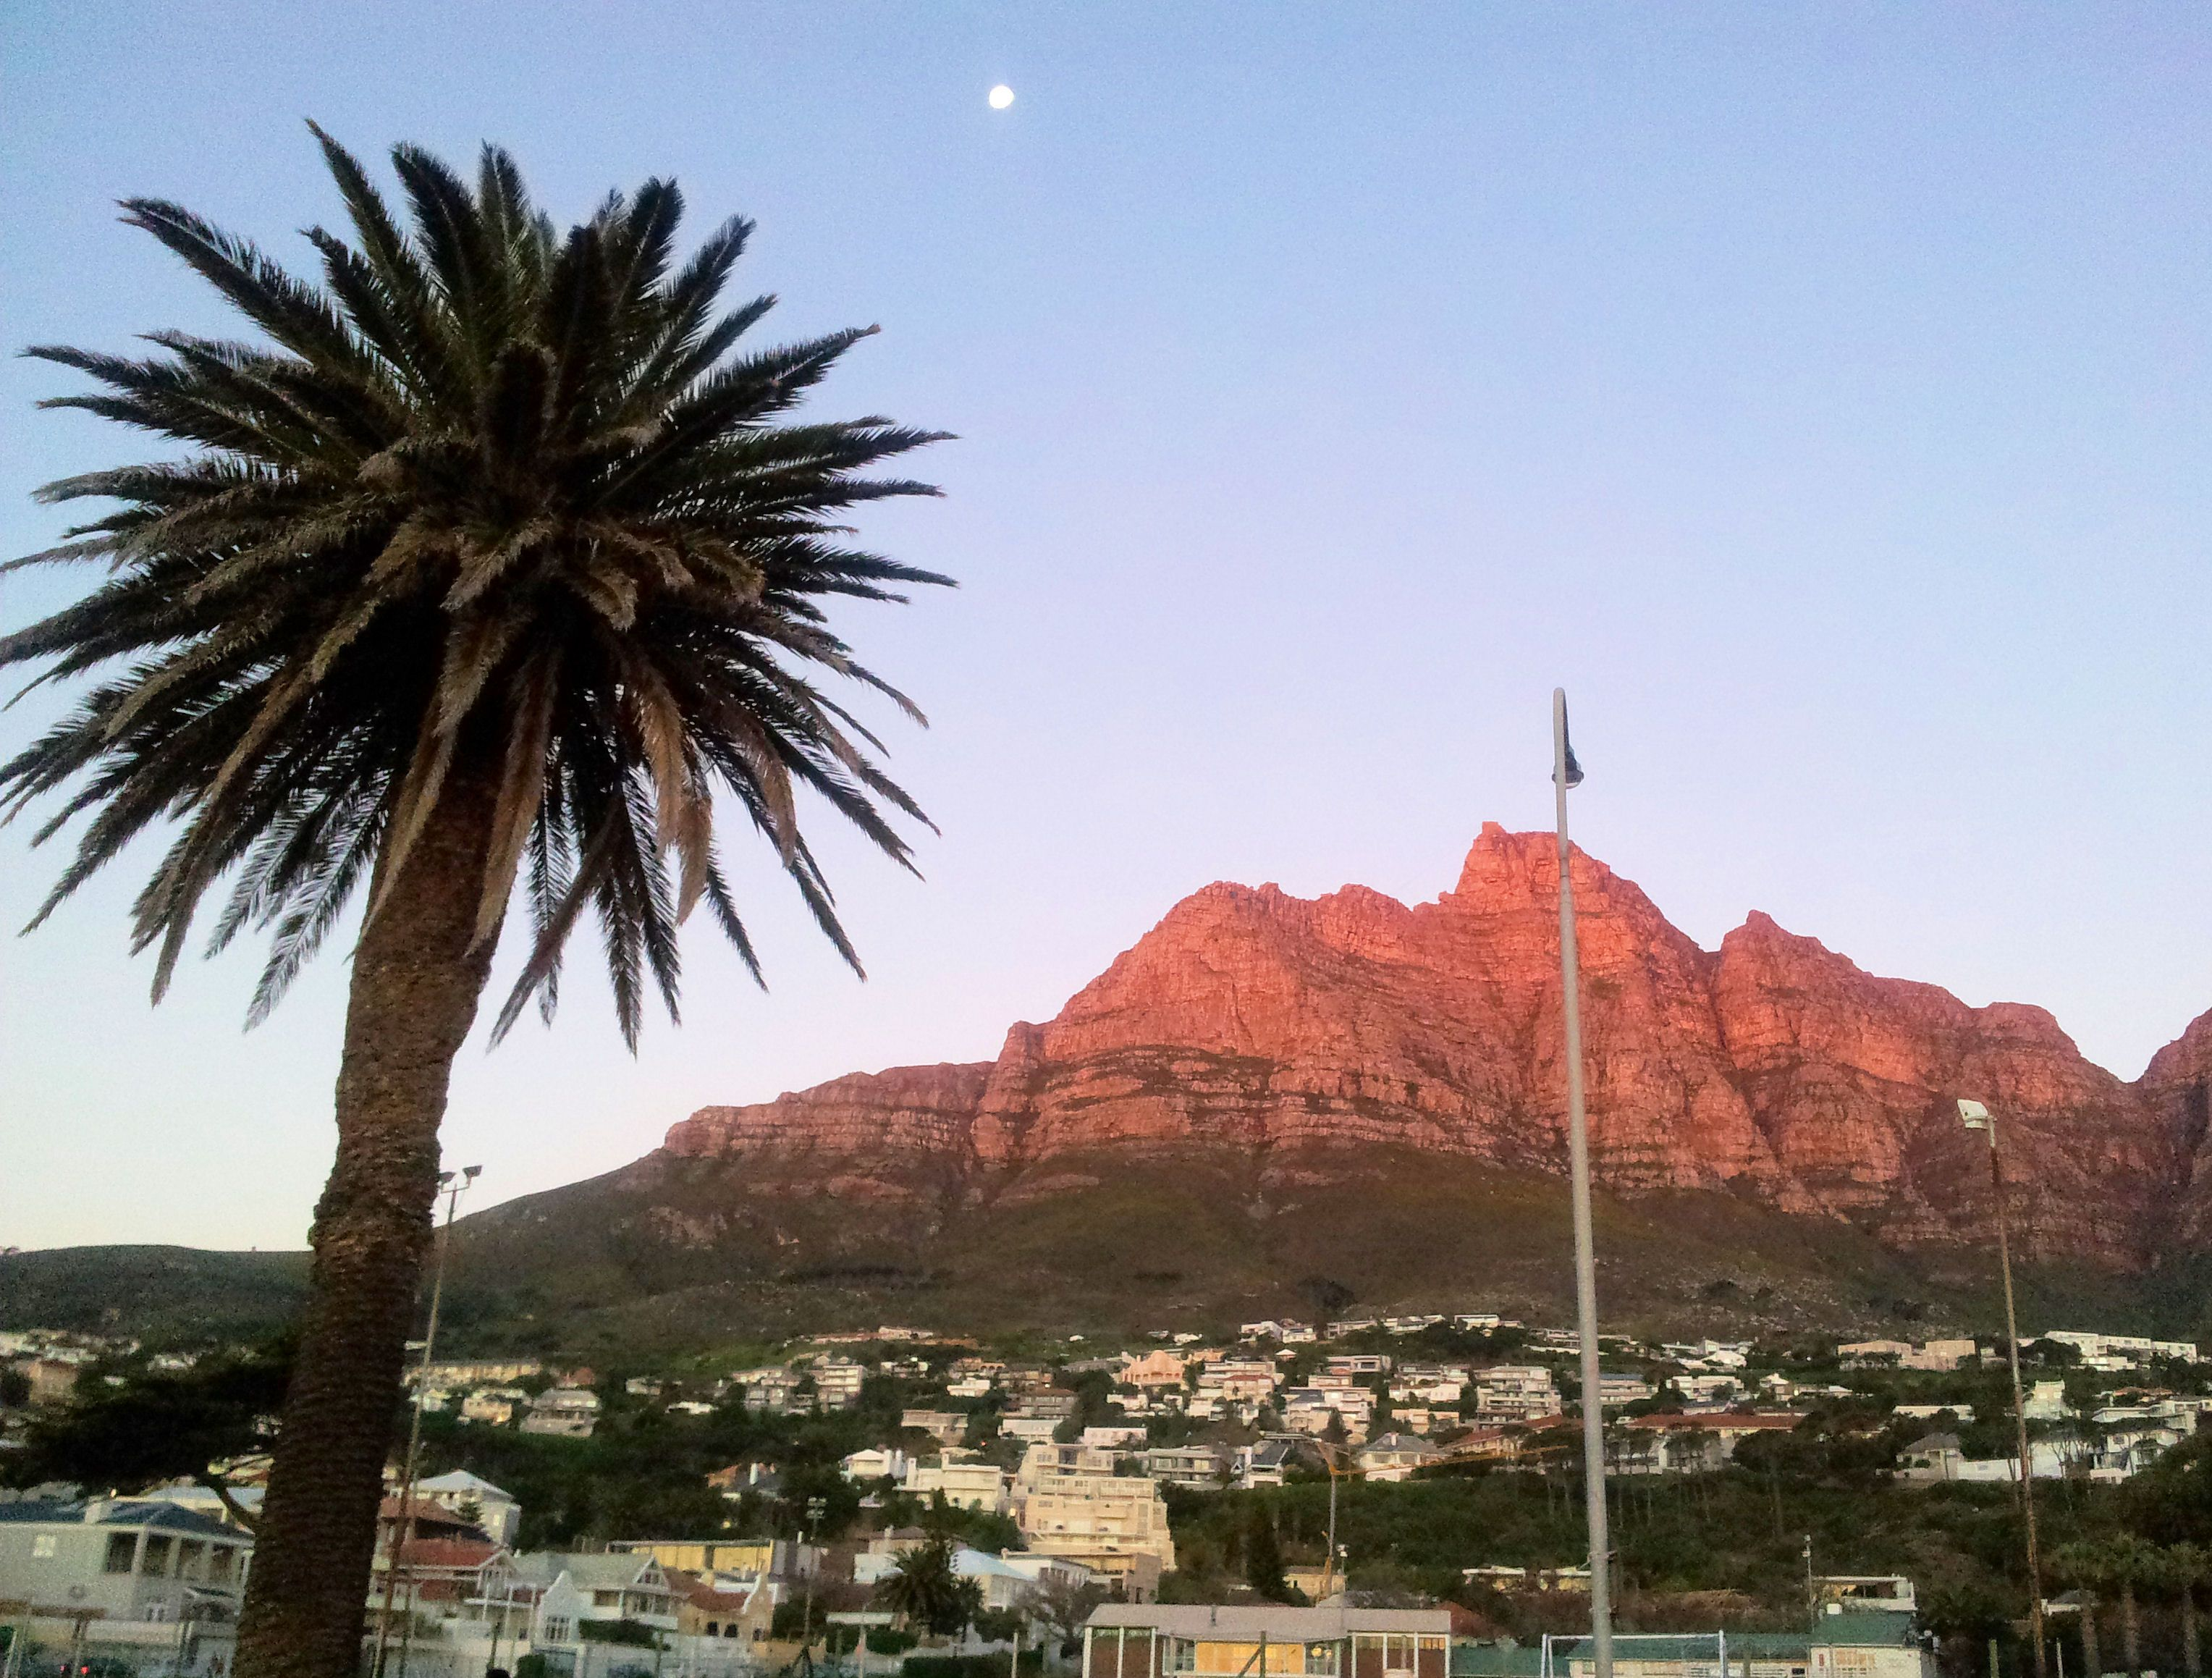 Camps Bay, Cape Town South Africa